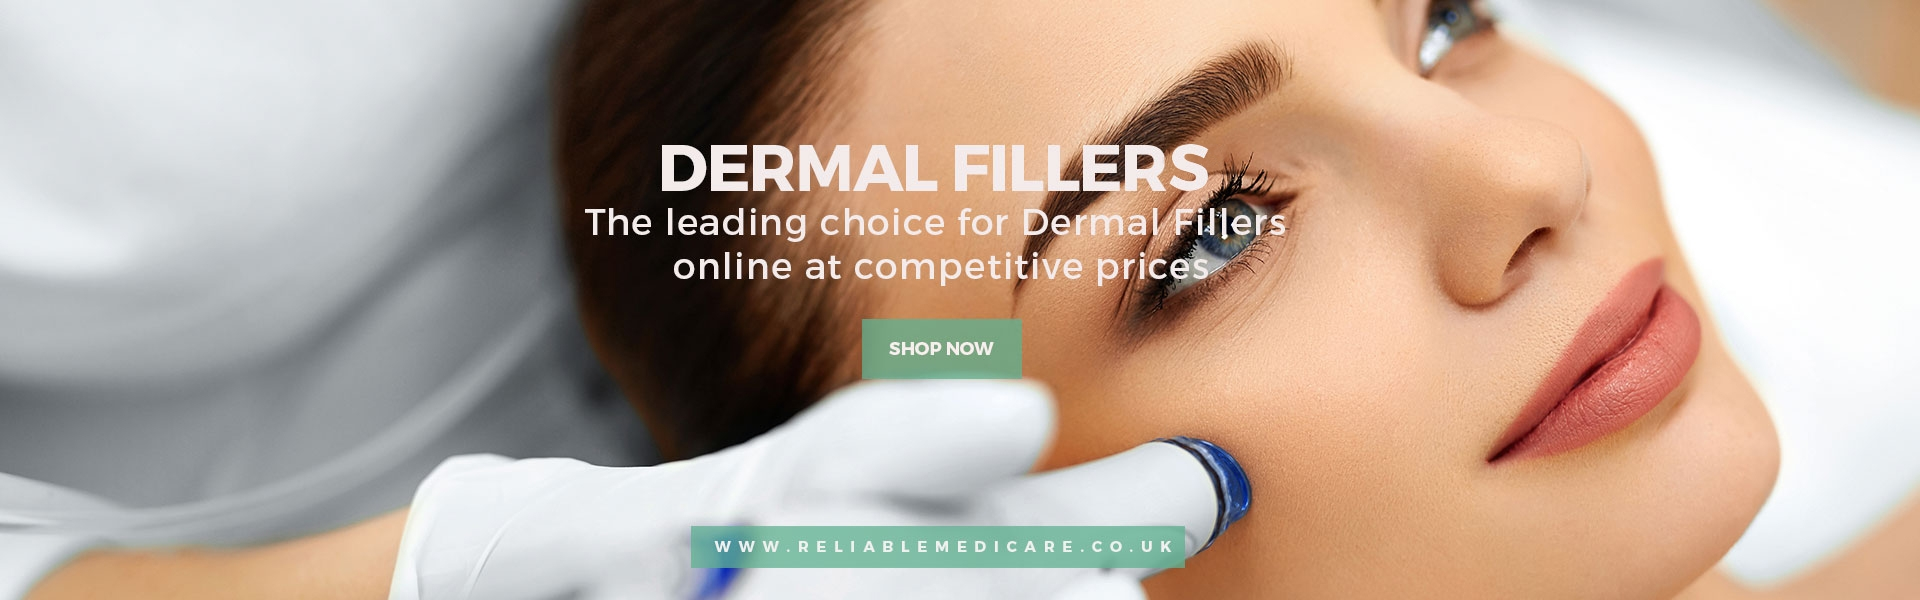 Wholesale Medical Supplier for Beauty Products, Dermal Fillers